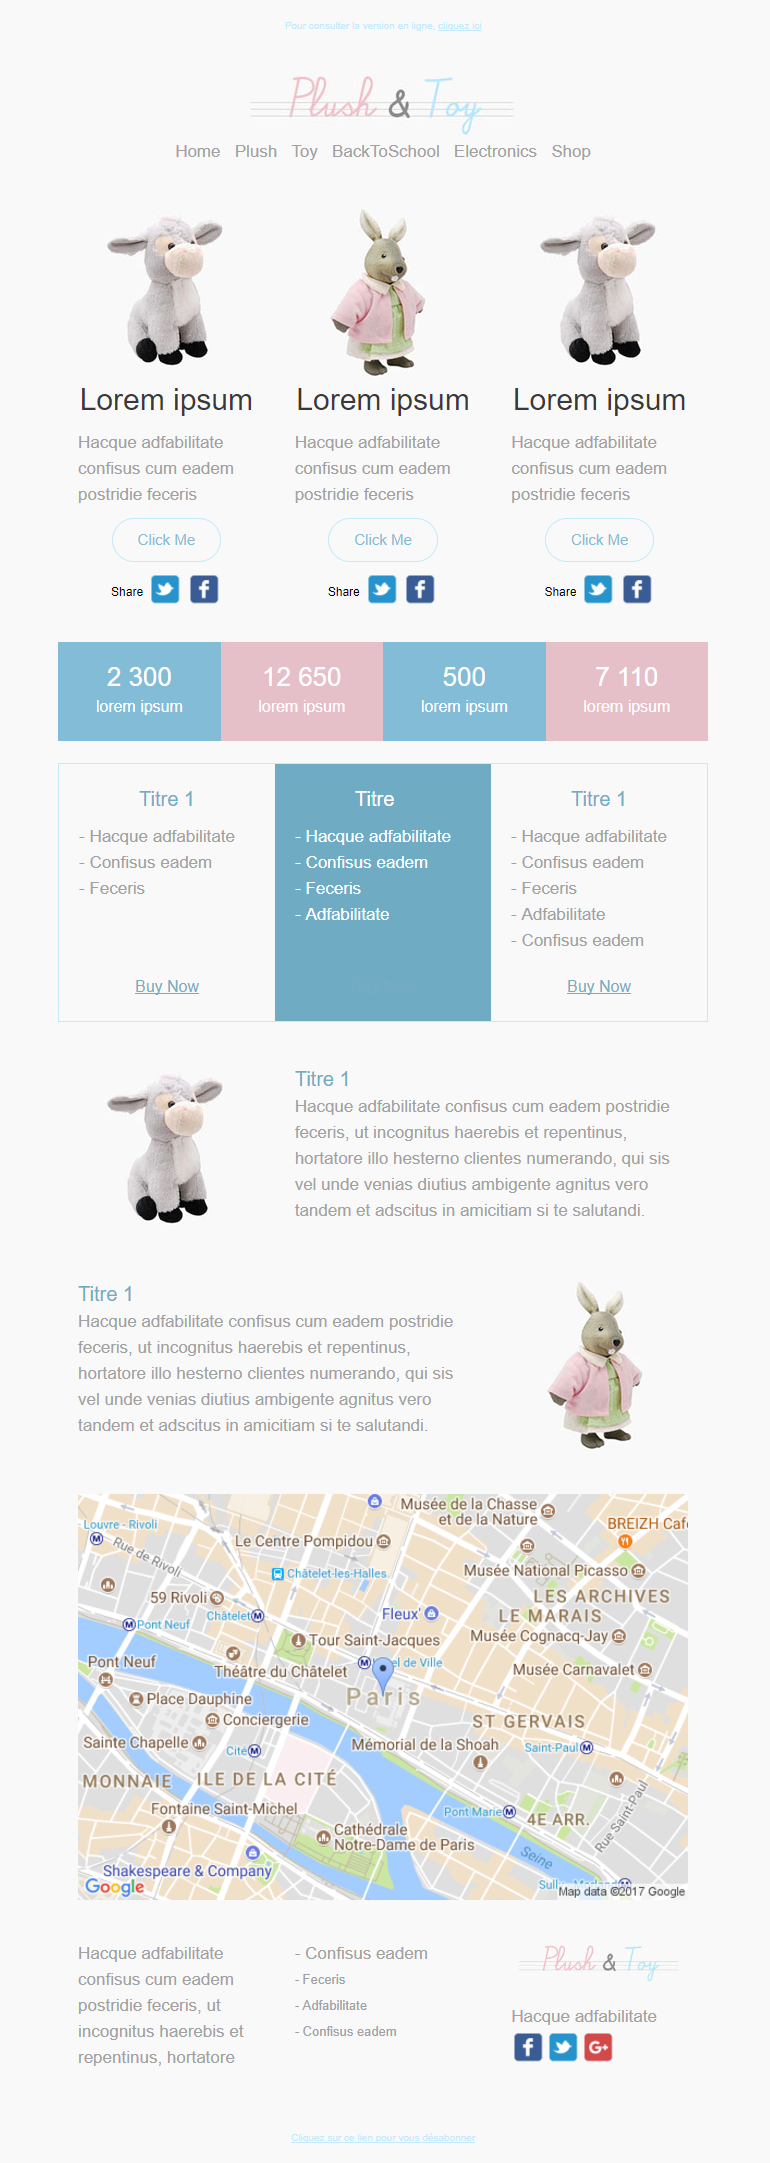 Templates Emailing Plush and Toy Sarbacane